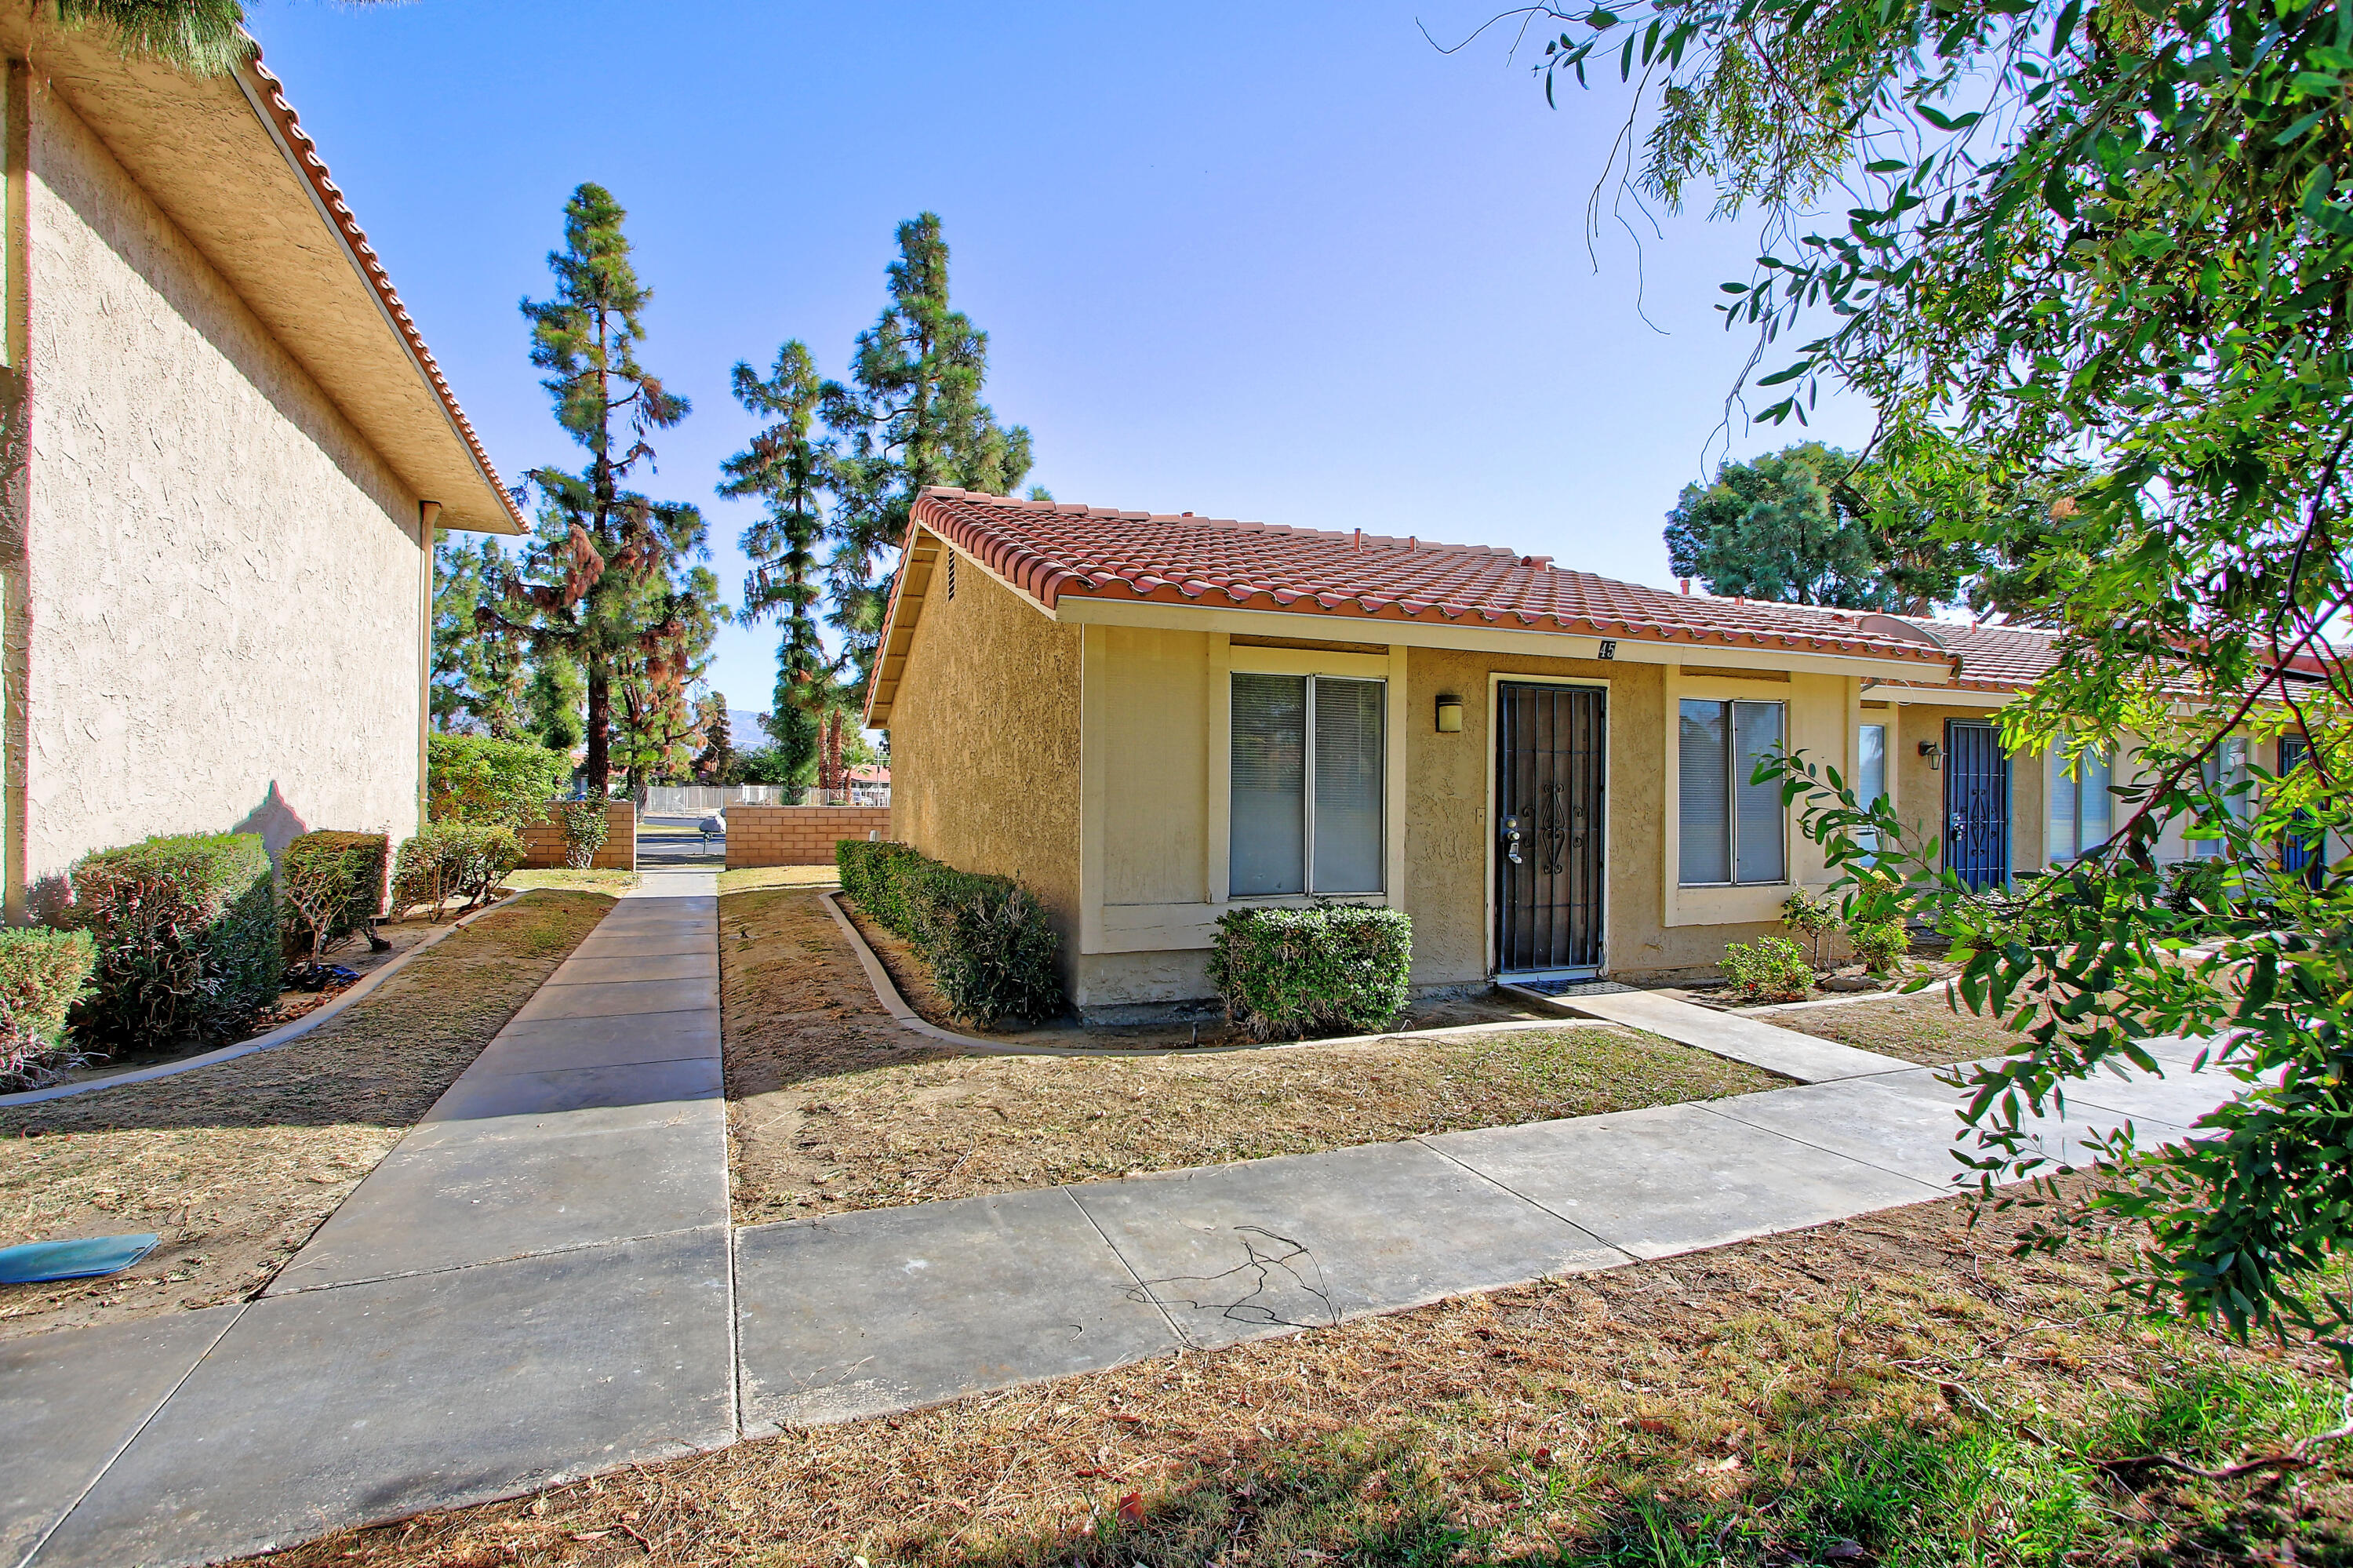 Newly remodeled end unit condo on the golf course. Plank laminate flooring throughout, all new kitchen cabinets, quartz countertops, new stainless appliances including fridge.  New bathroom vanity installed.  Nice clean unit.  Vacation rentals are allowed in this HOA.  Great opportunity!